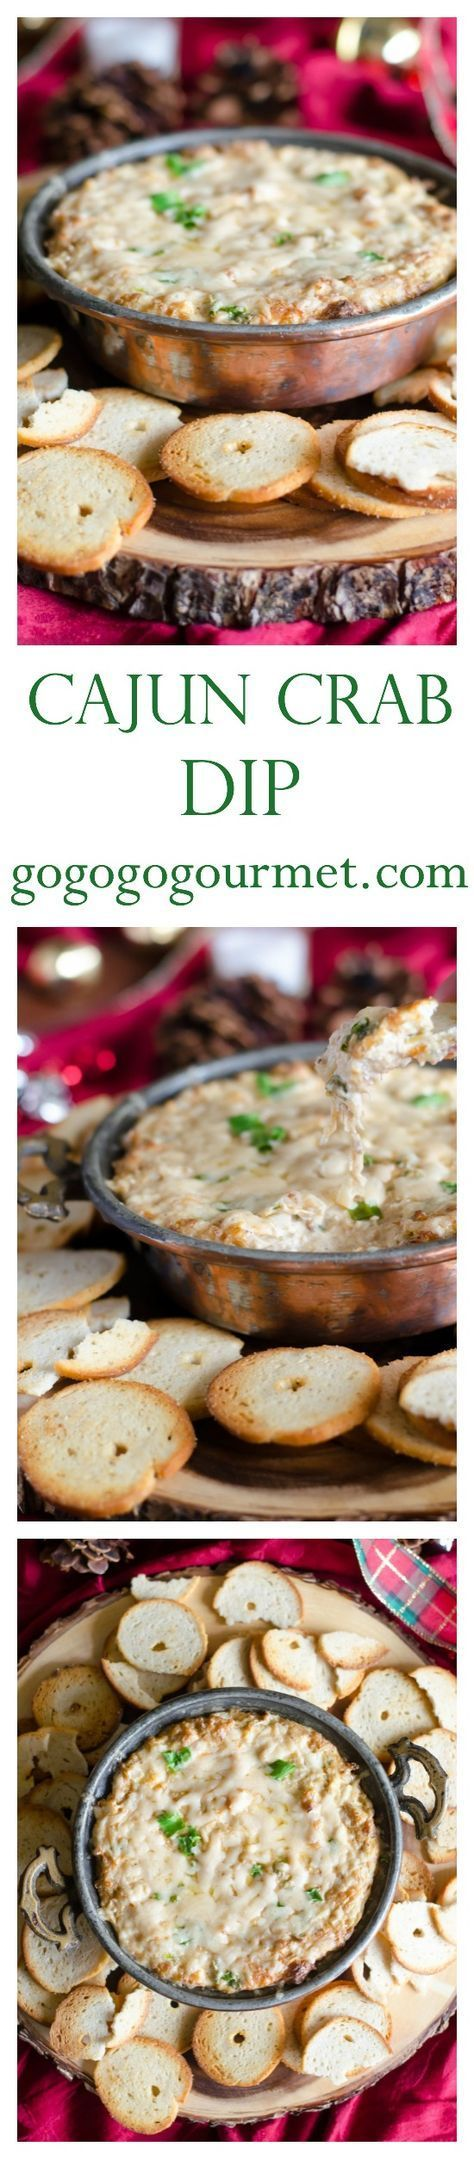 Everyone loves a good dip for parties- and this Cajun Crab Dip is truly addicting! | Go Go Go Gourmet @gogogogourmet